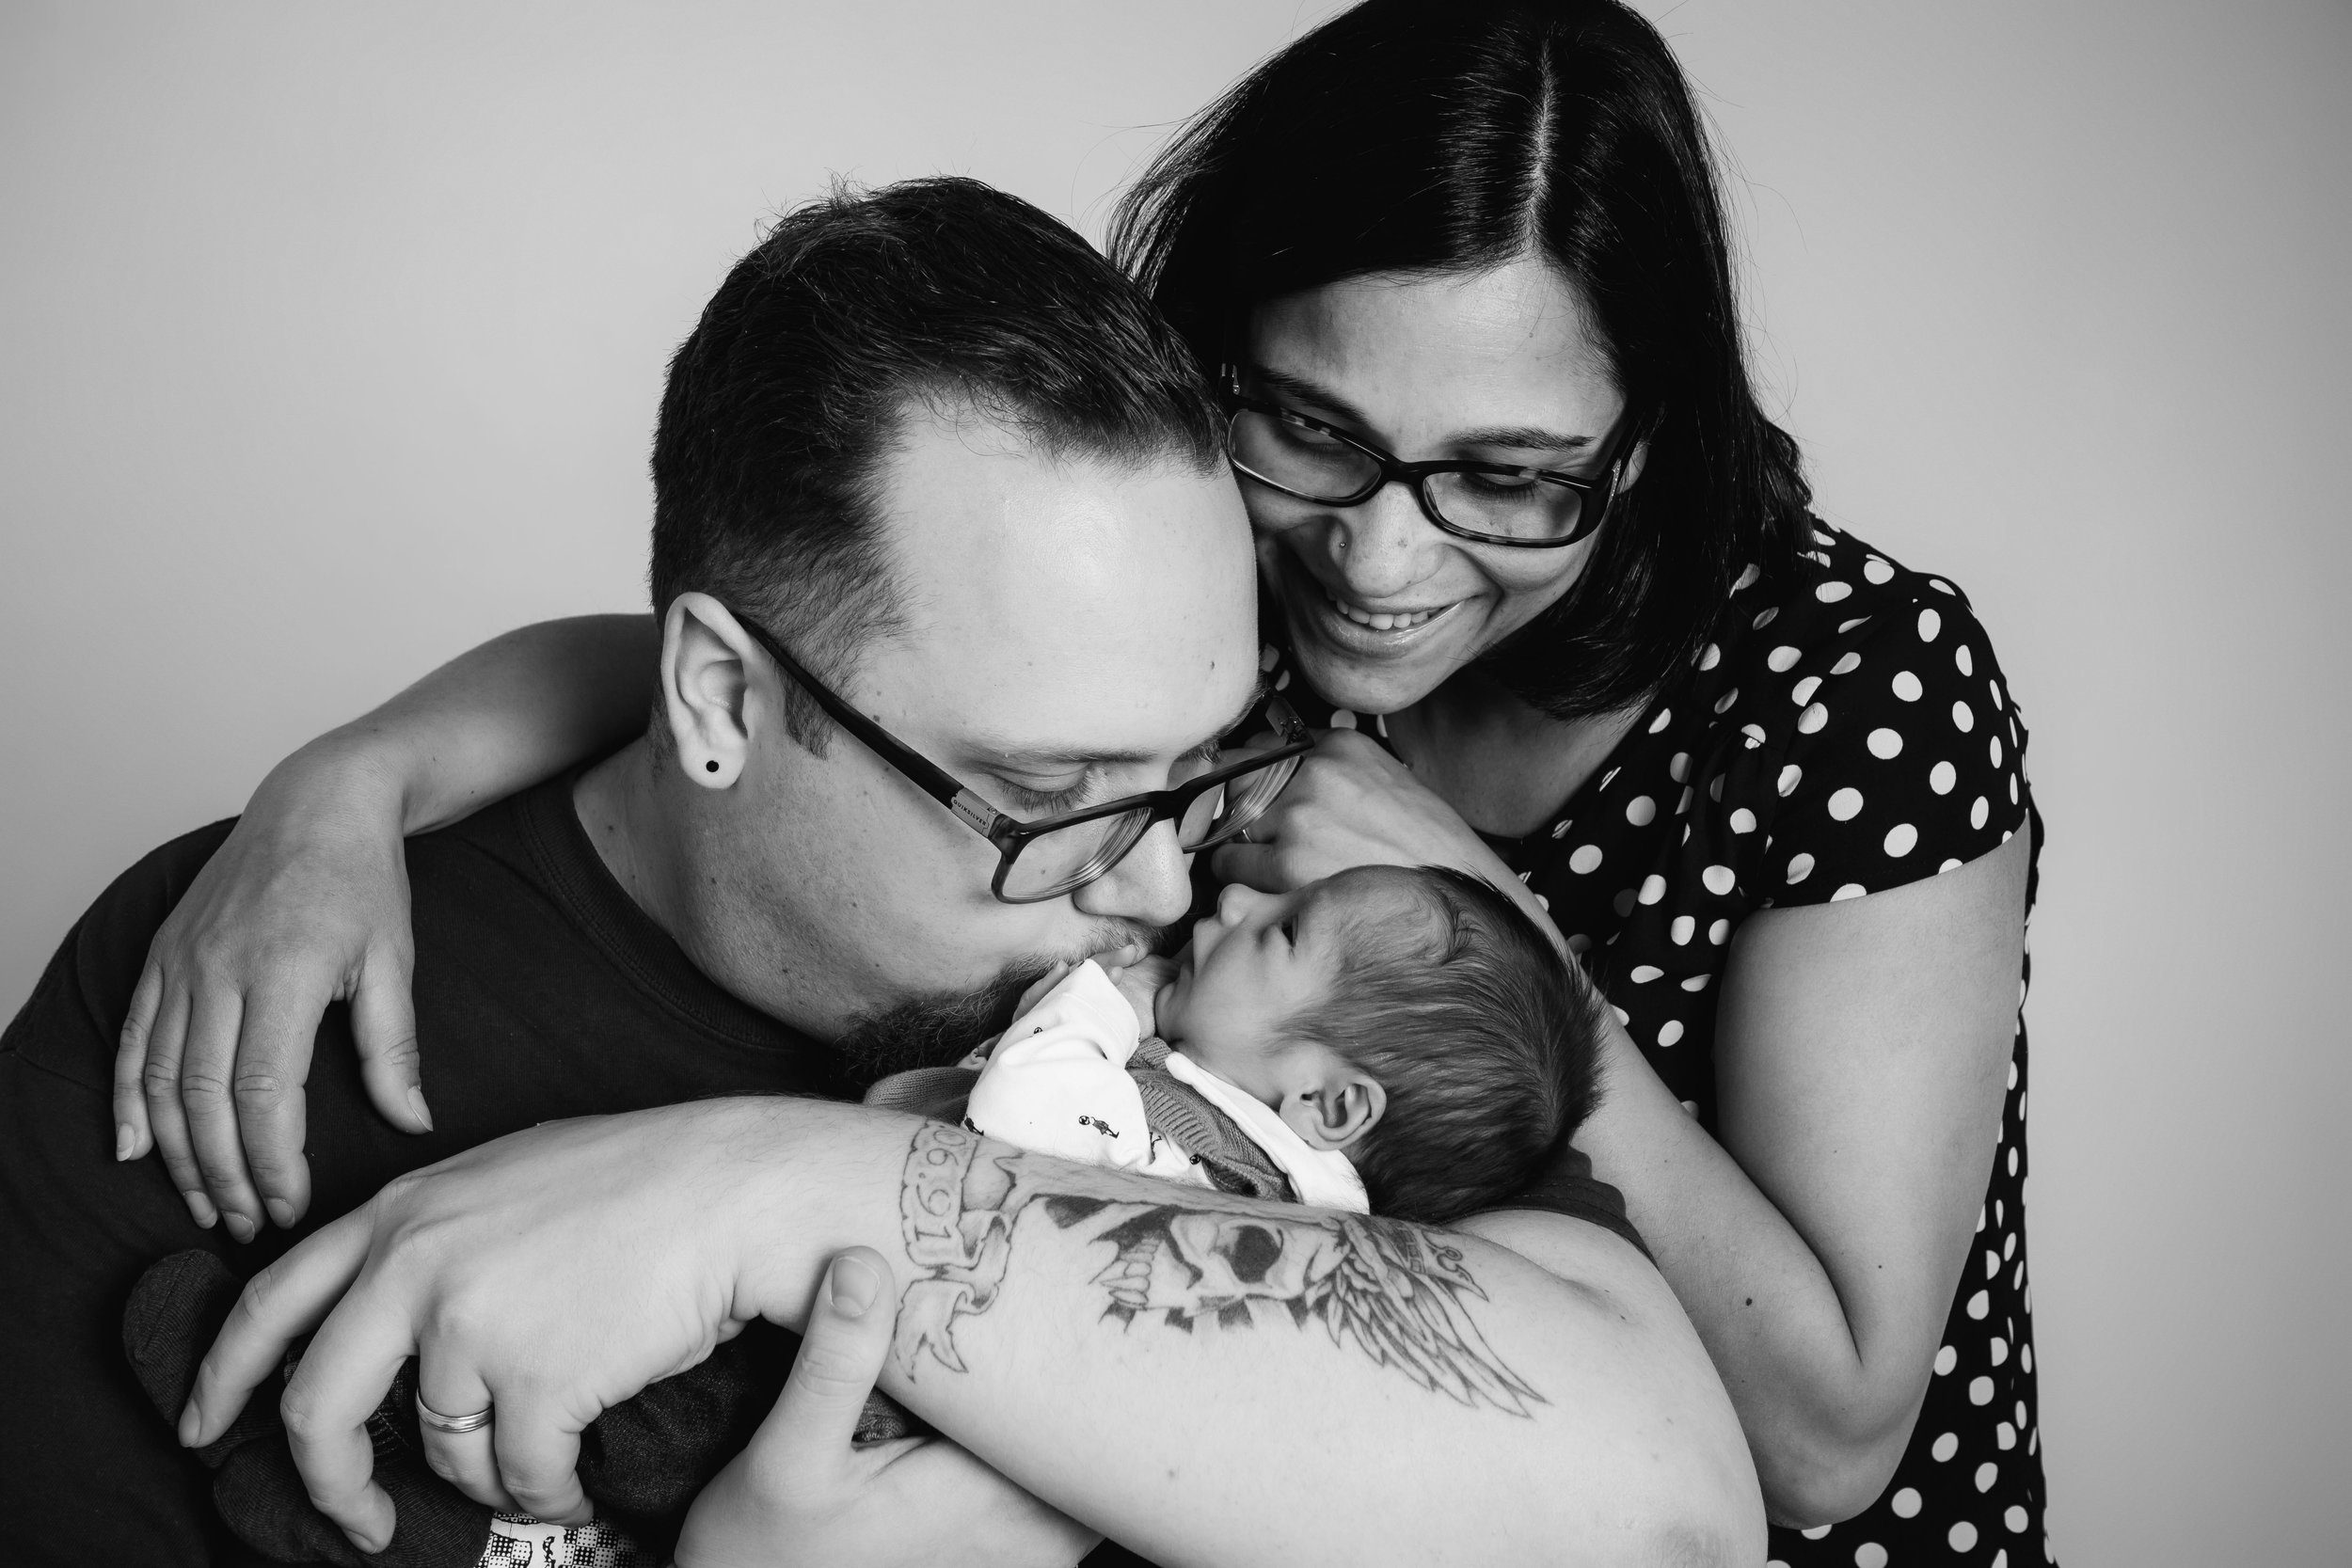 zigzag-photography-leicester-newborn-baby-family-photographer-photography-family-ideas-props